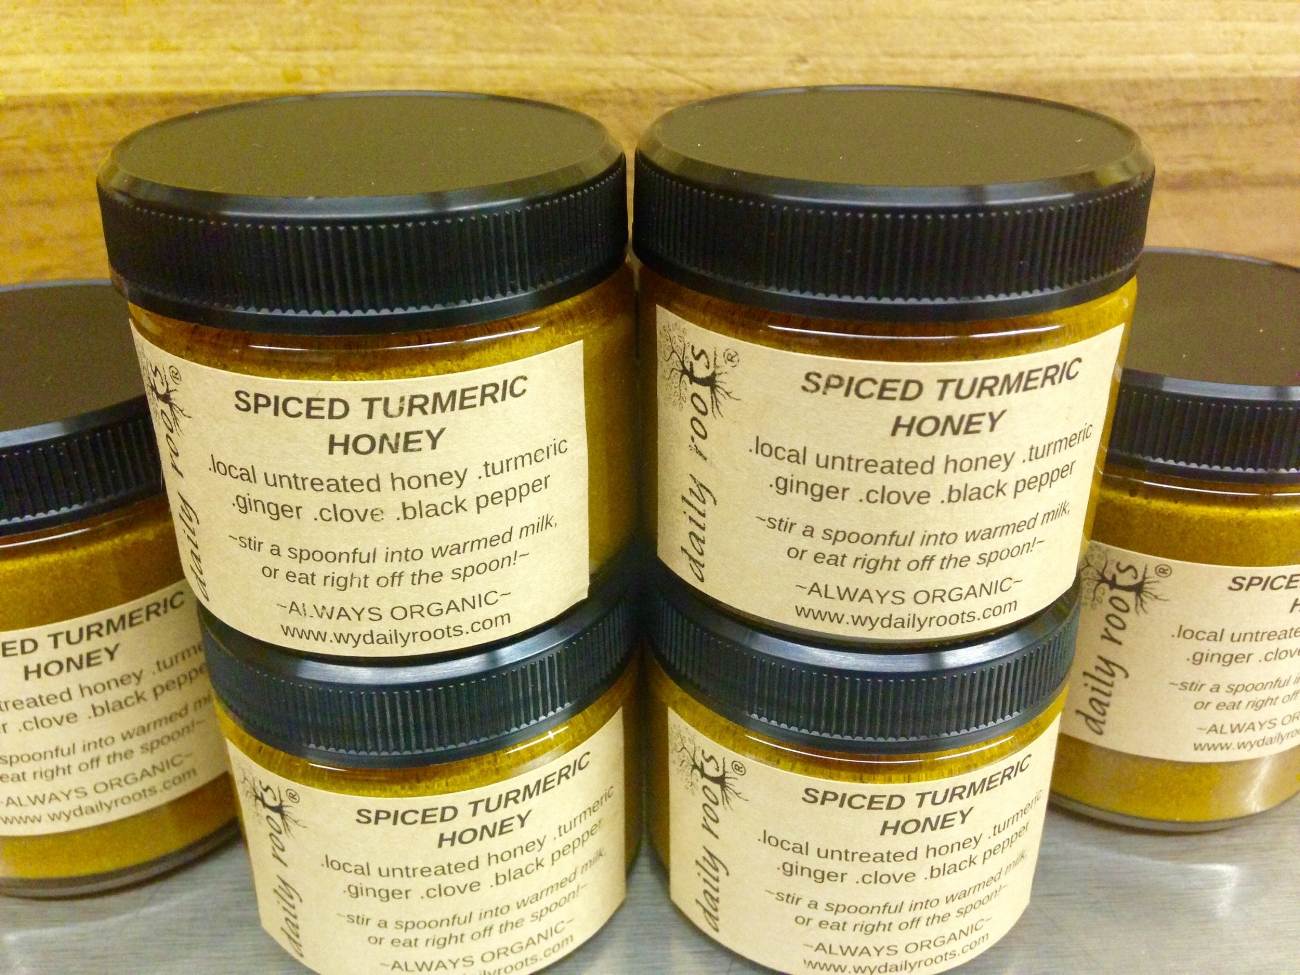 SPICED TURMERIC HONEY - Wyoming honey blended with turmeric, ginger, clove and black pepper. Delicious stirred into tea, warmed milk or straight off the spoon for an anti-inflammatory boost. $ 6 | 12Place order